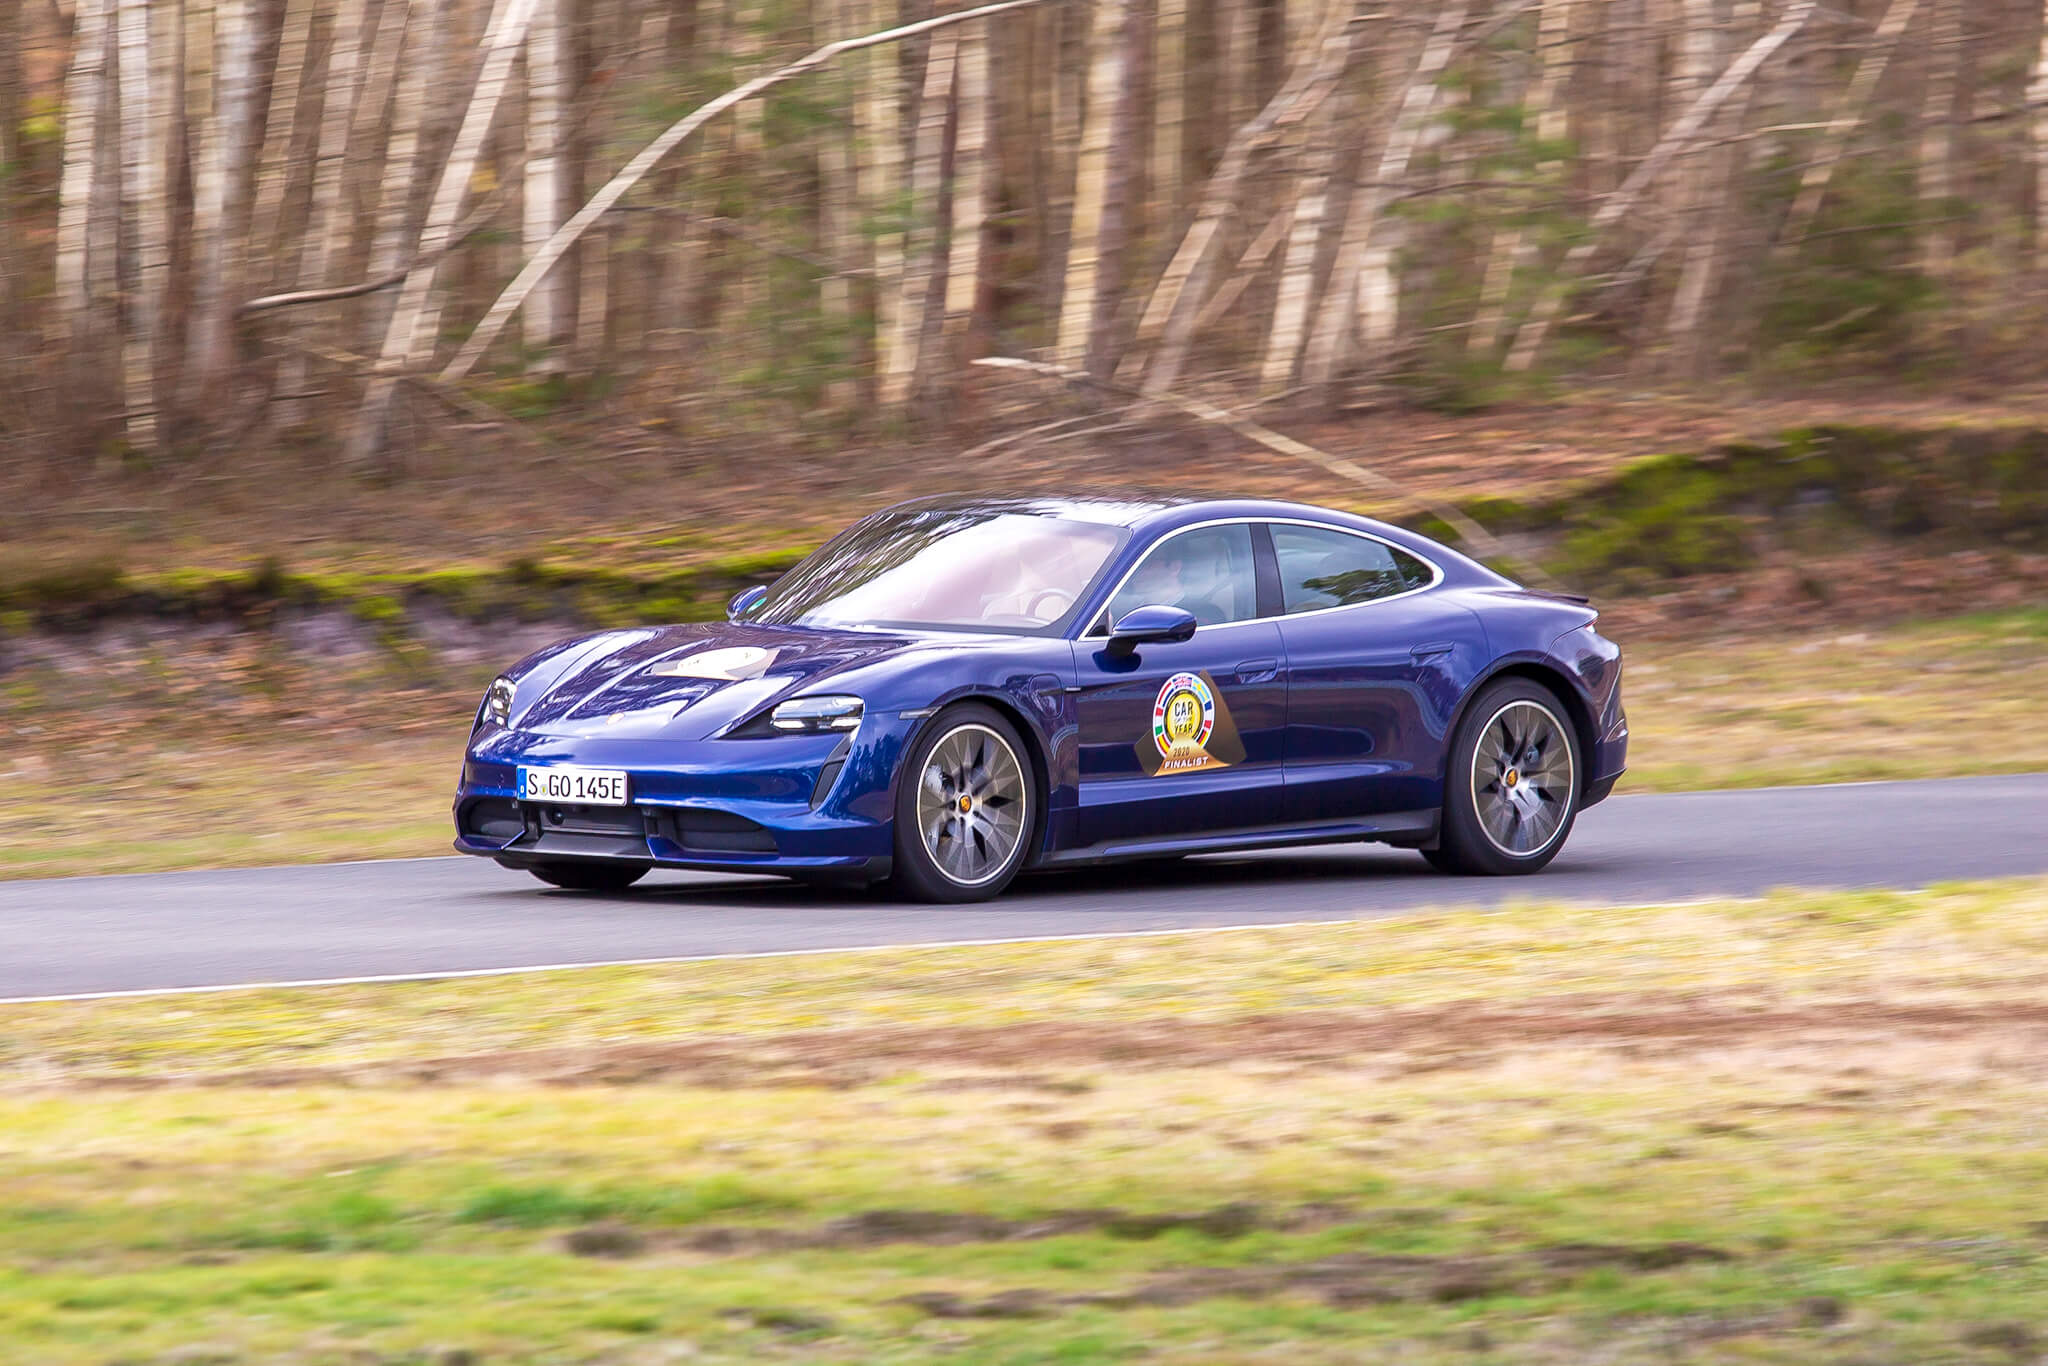 Car of the Year 2020 — Porsche Taycan